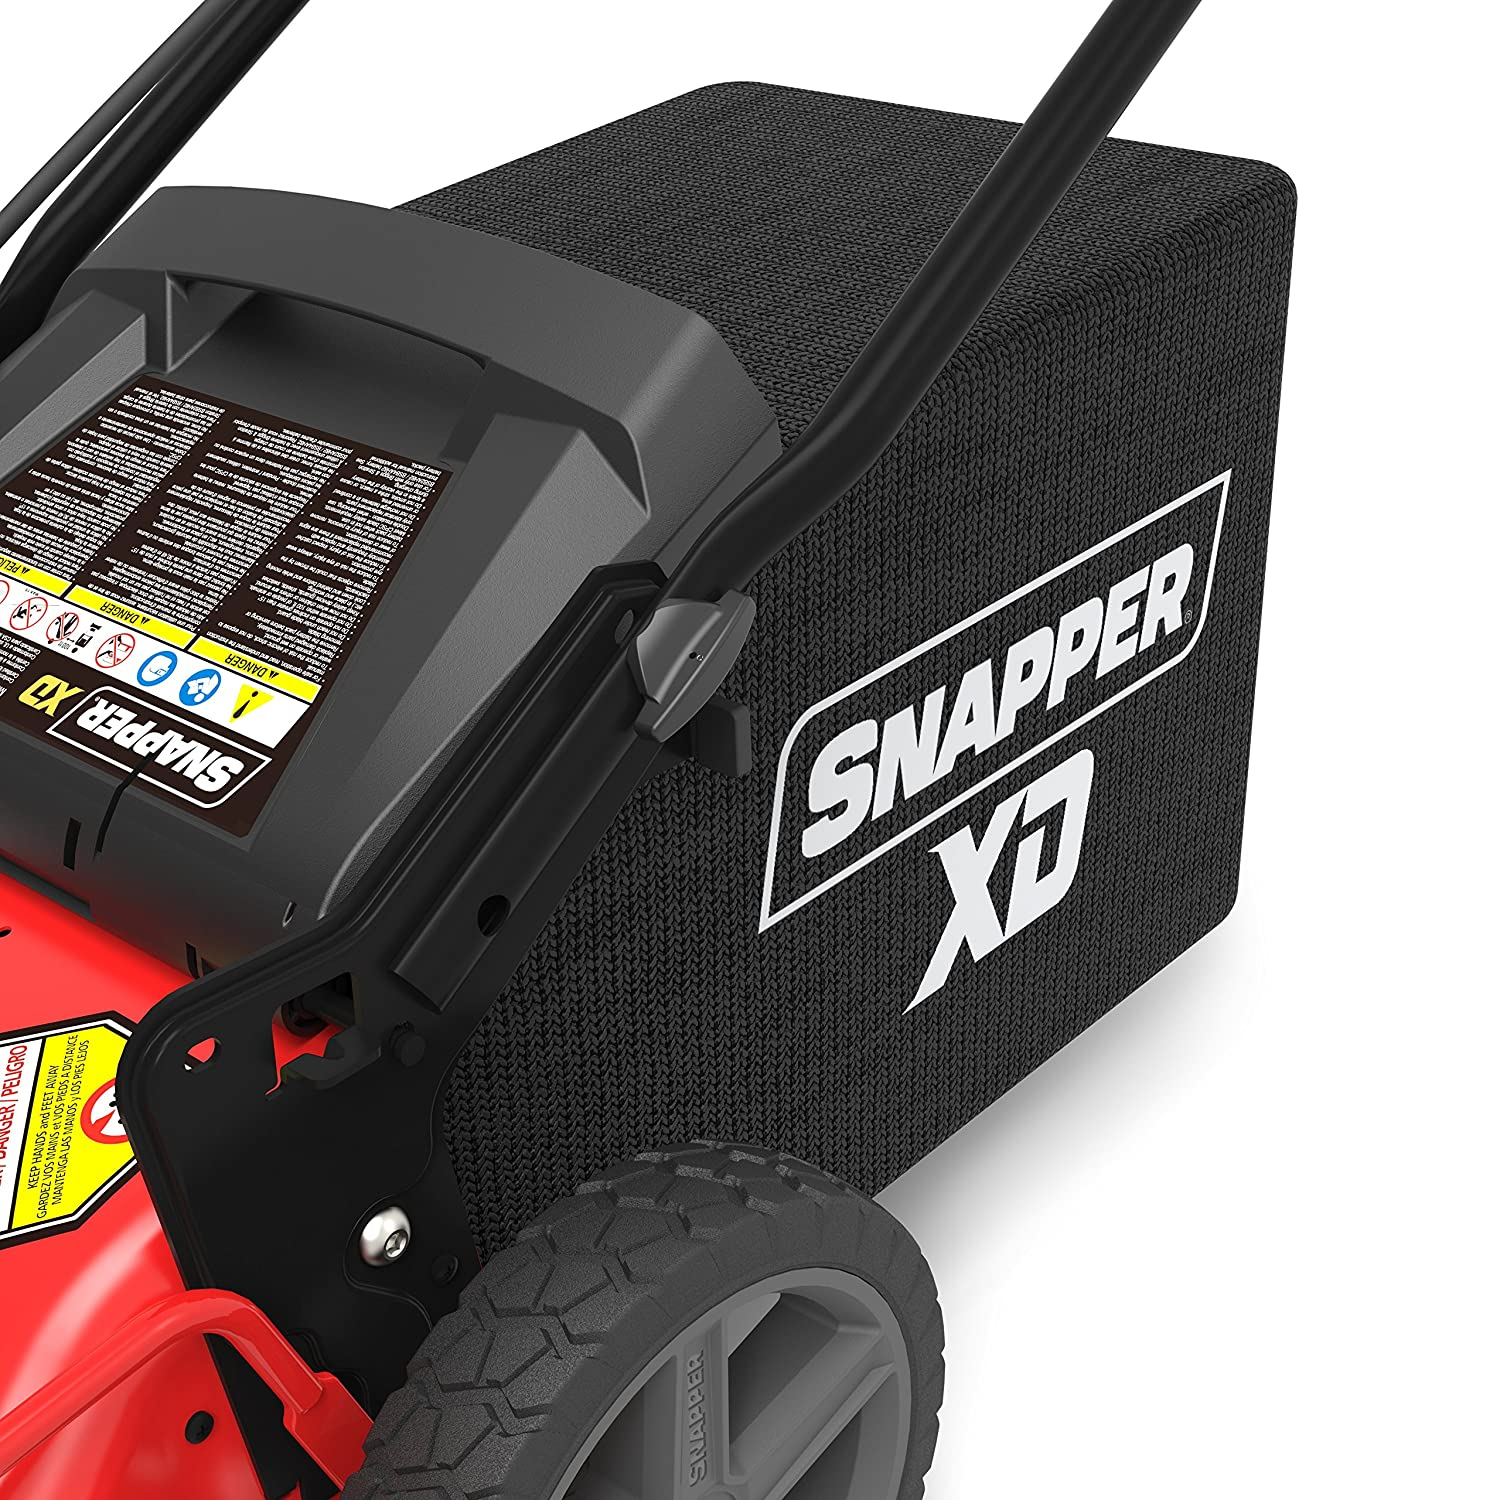 snapper review mower